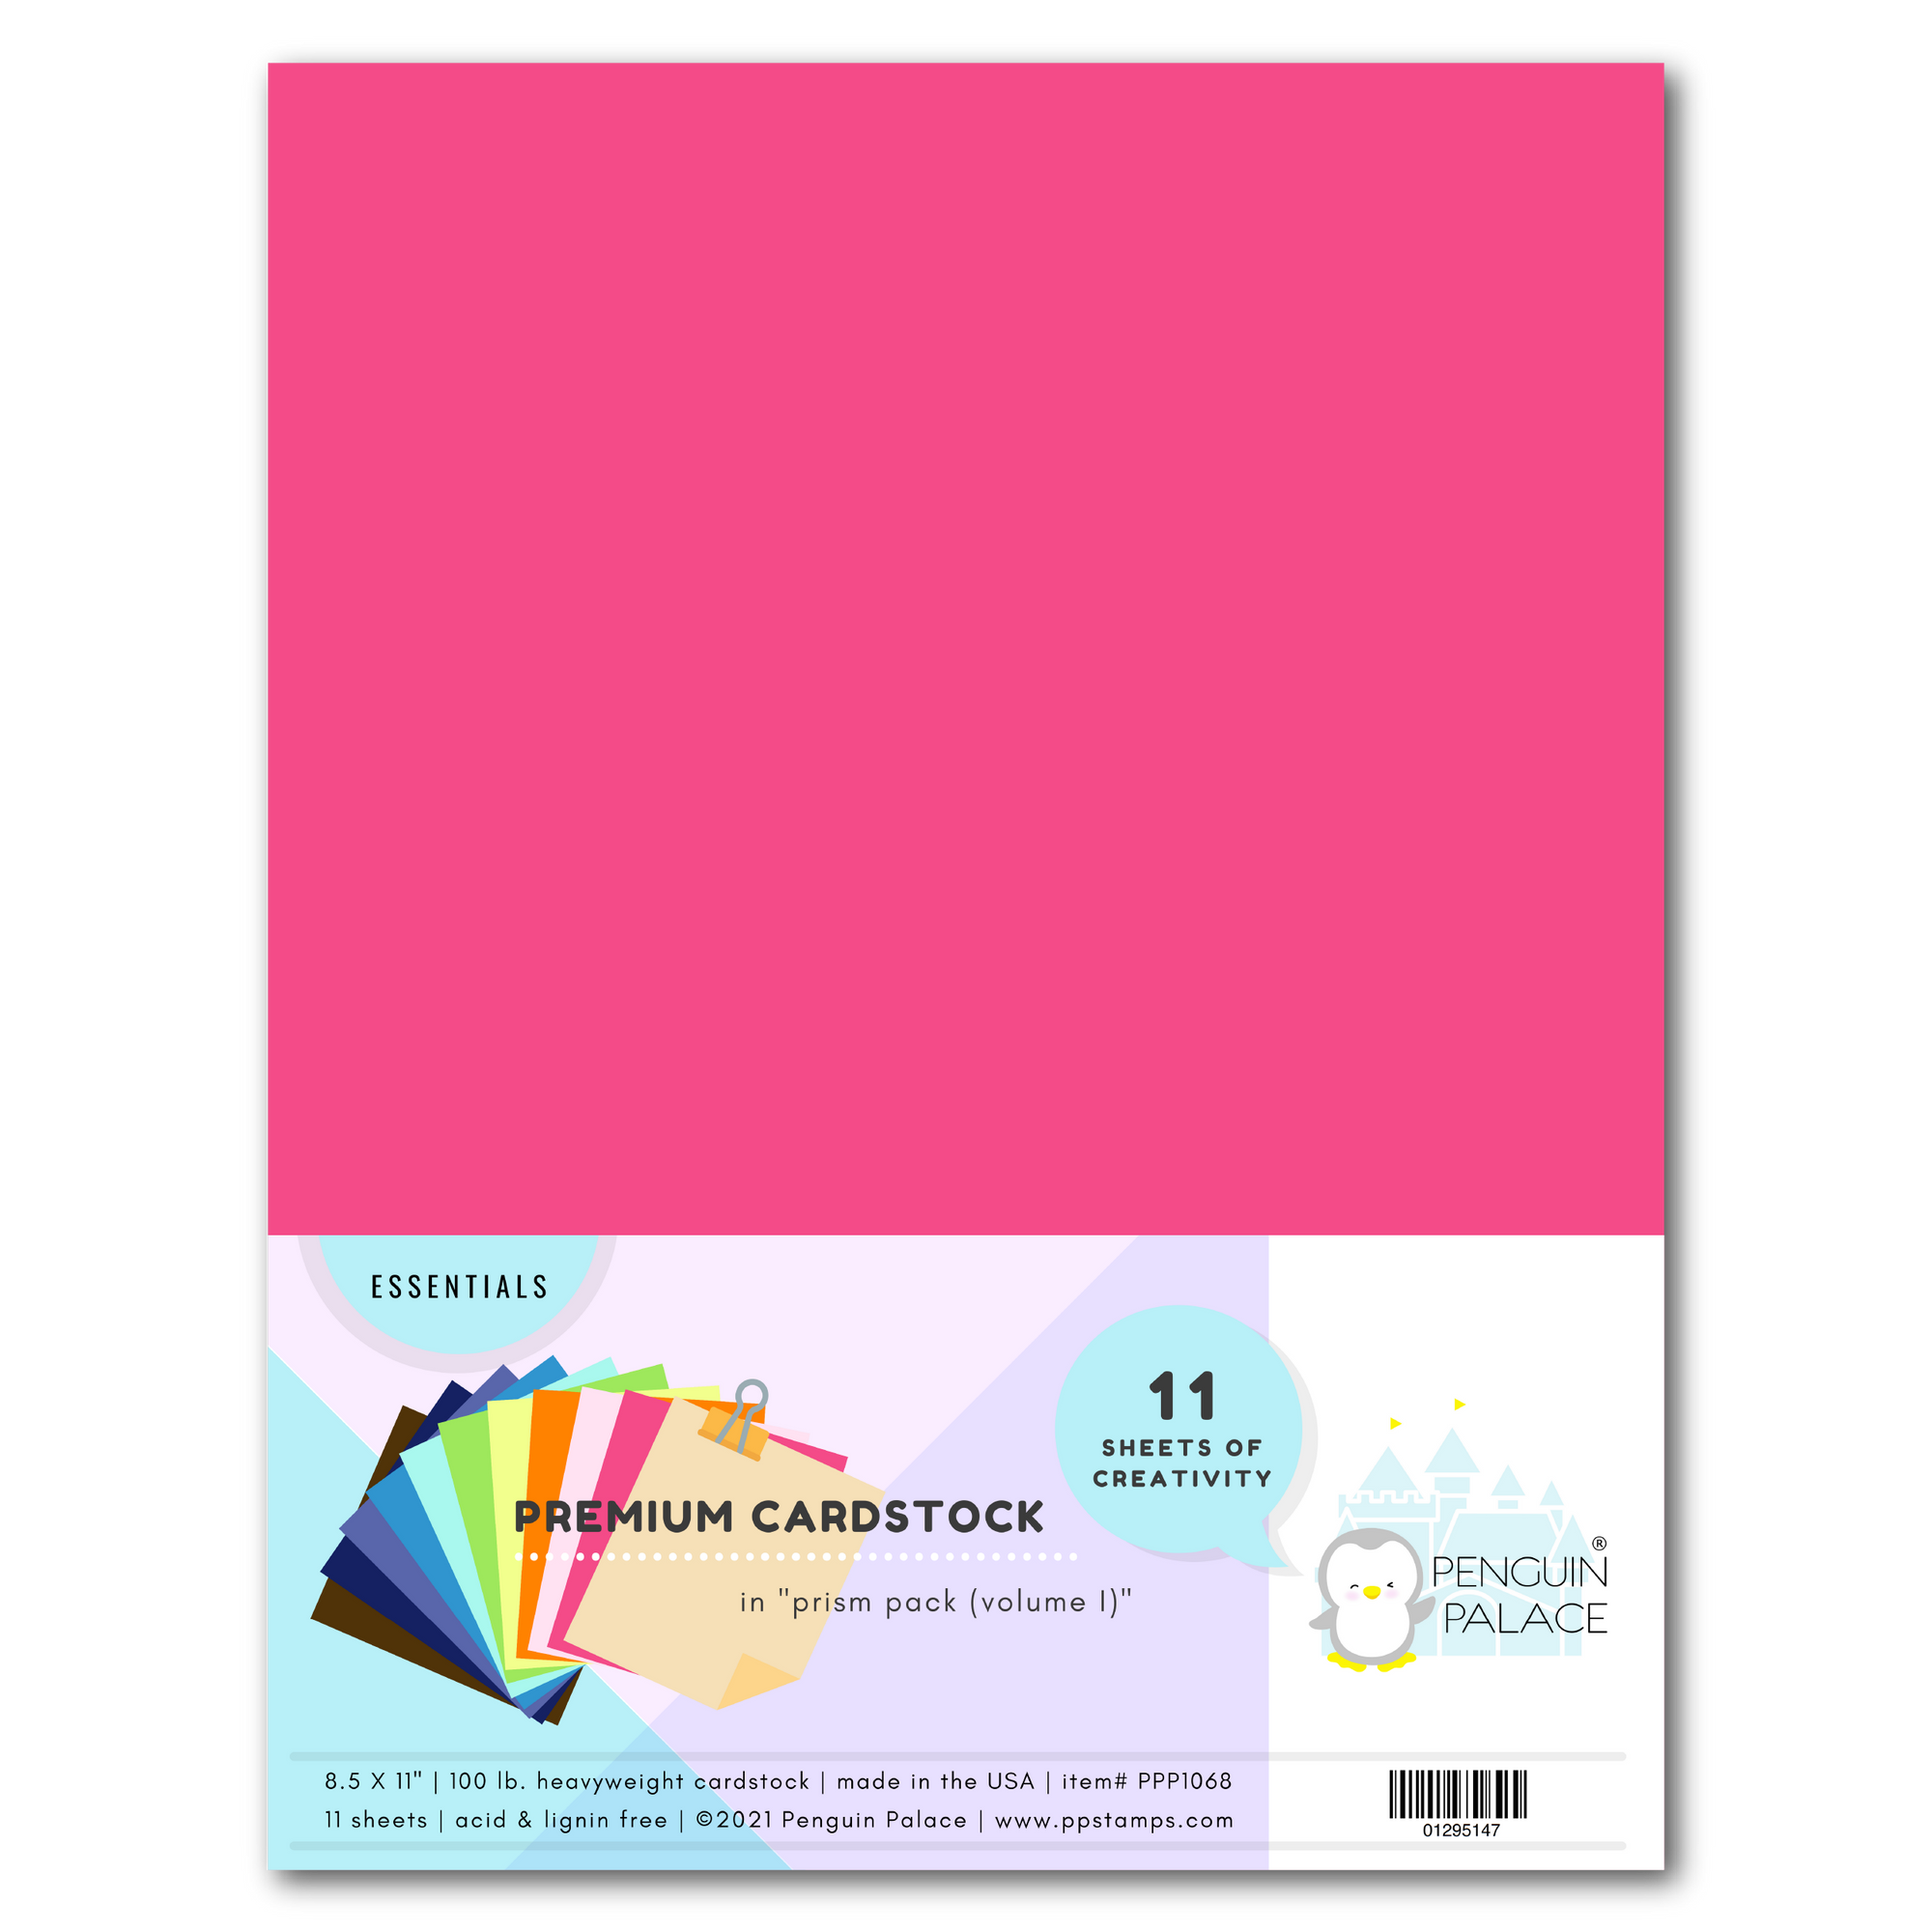 Prism Pack (Volume I) - Heavyweight Premium Cardstock